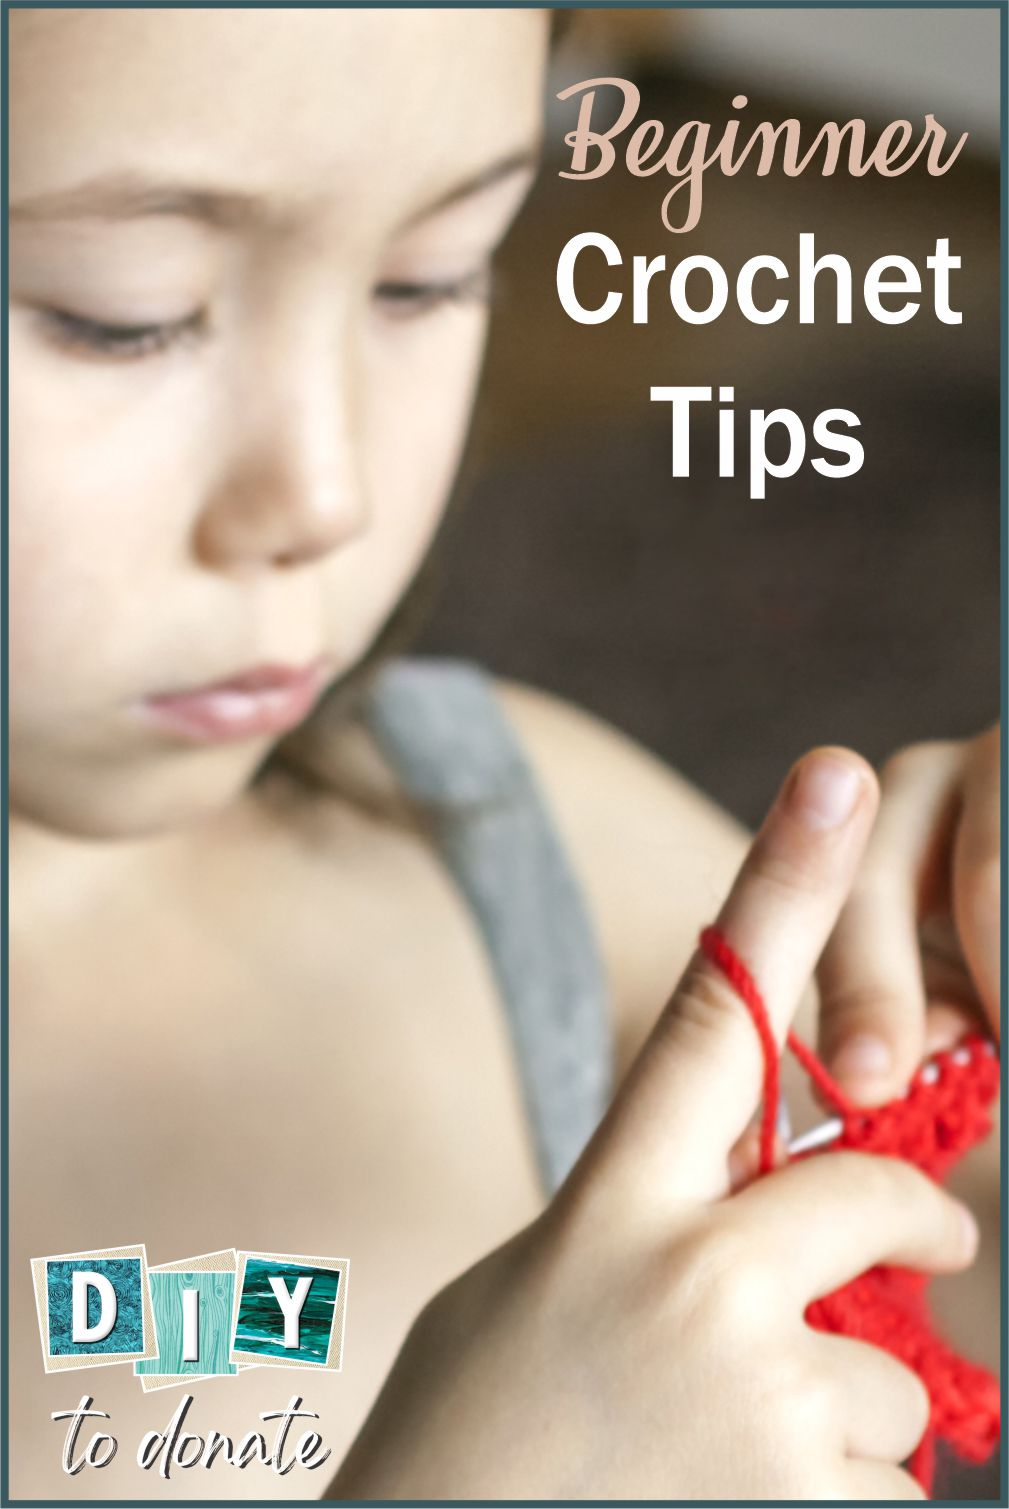 These crochet tips will help you enjoy your new craft and all the wonderful things you can learn to make and donate #diytodonate #diy #crocheting #craft #donate #donating #crafting #crochet #giveback